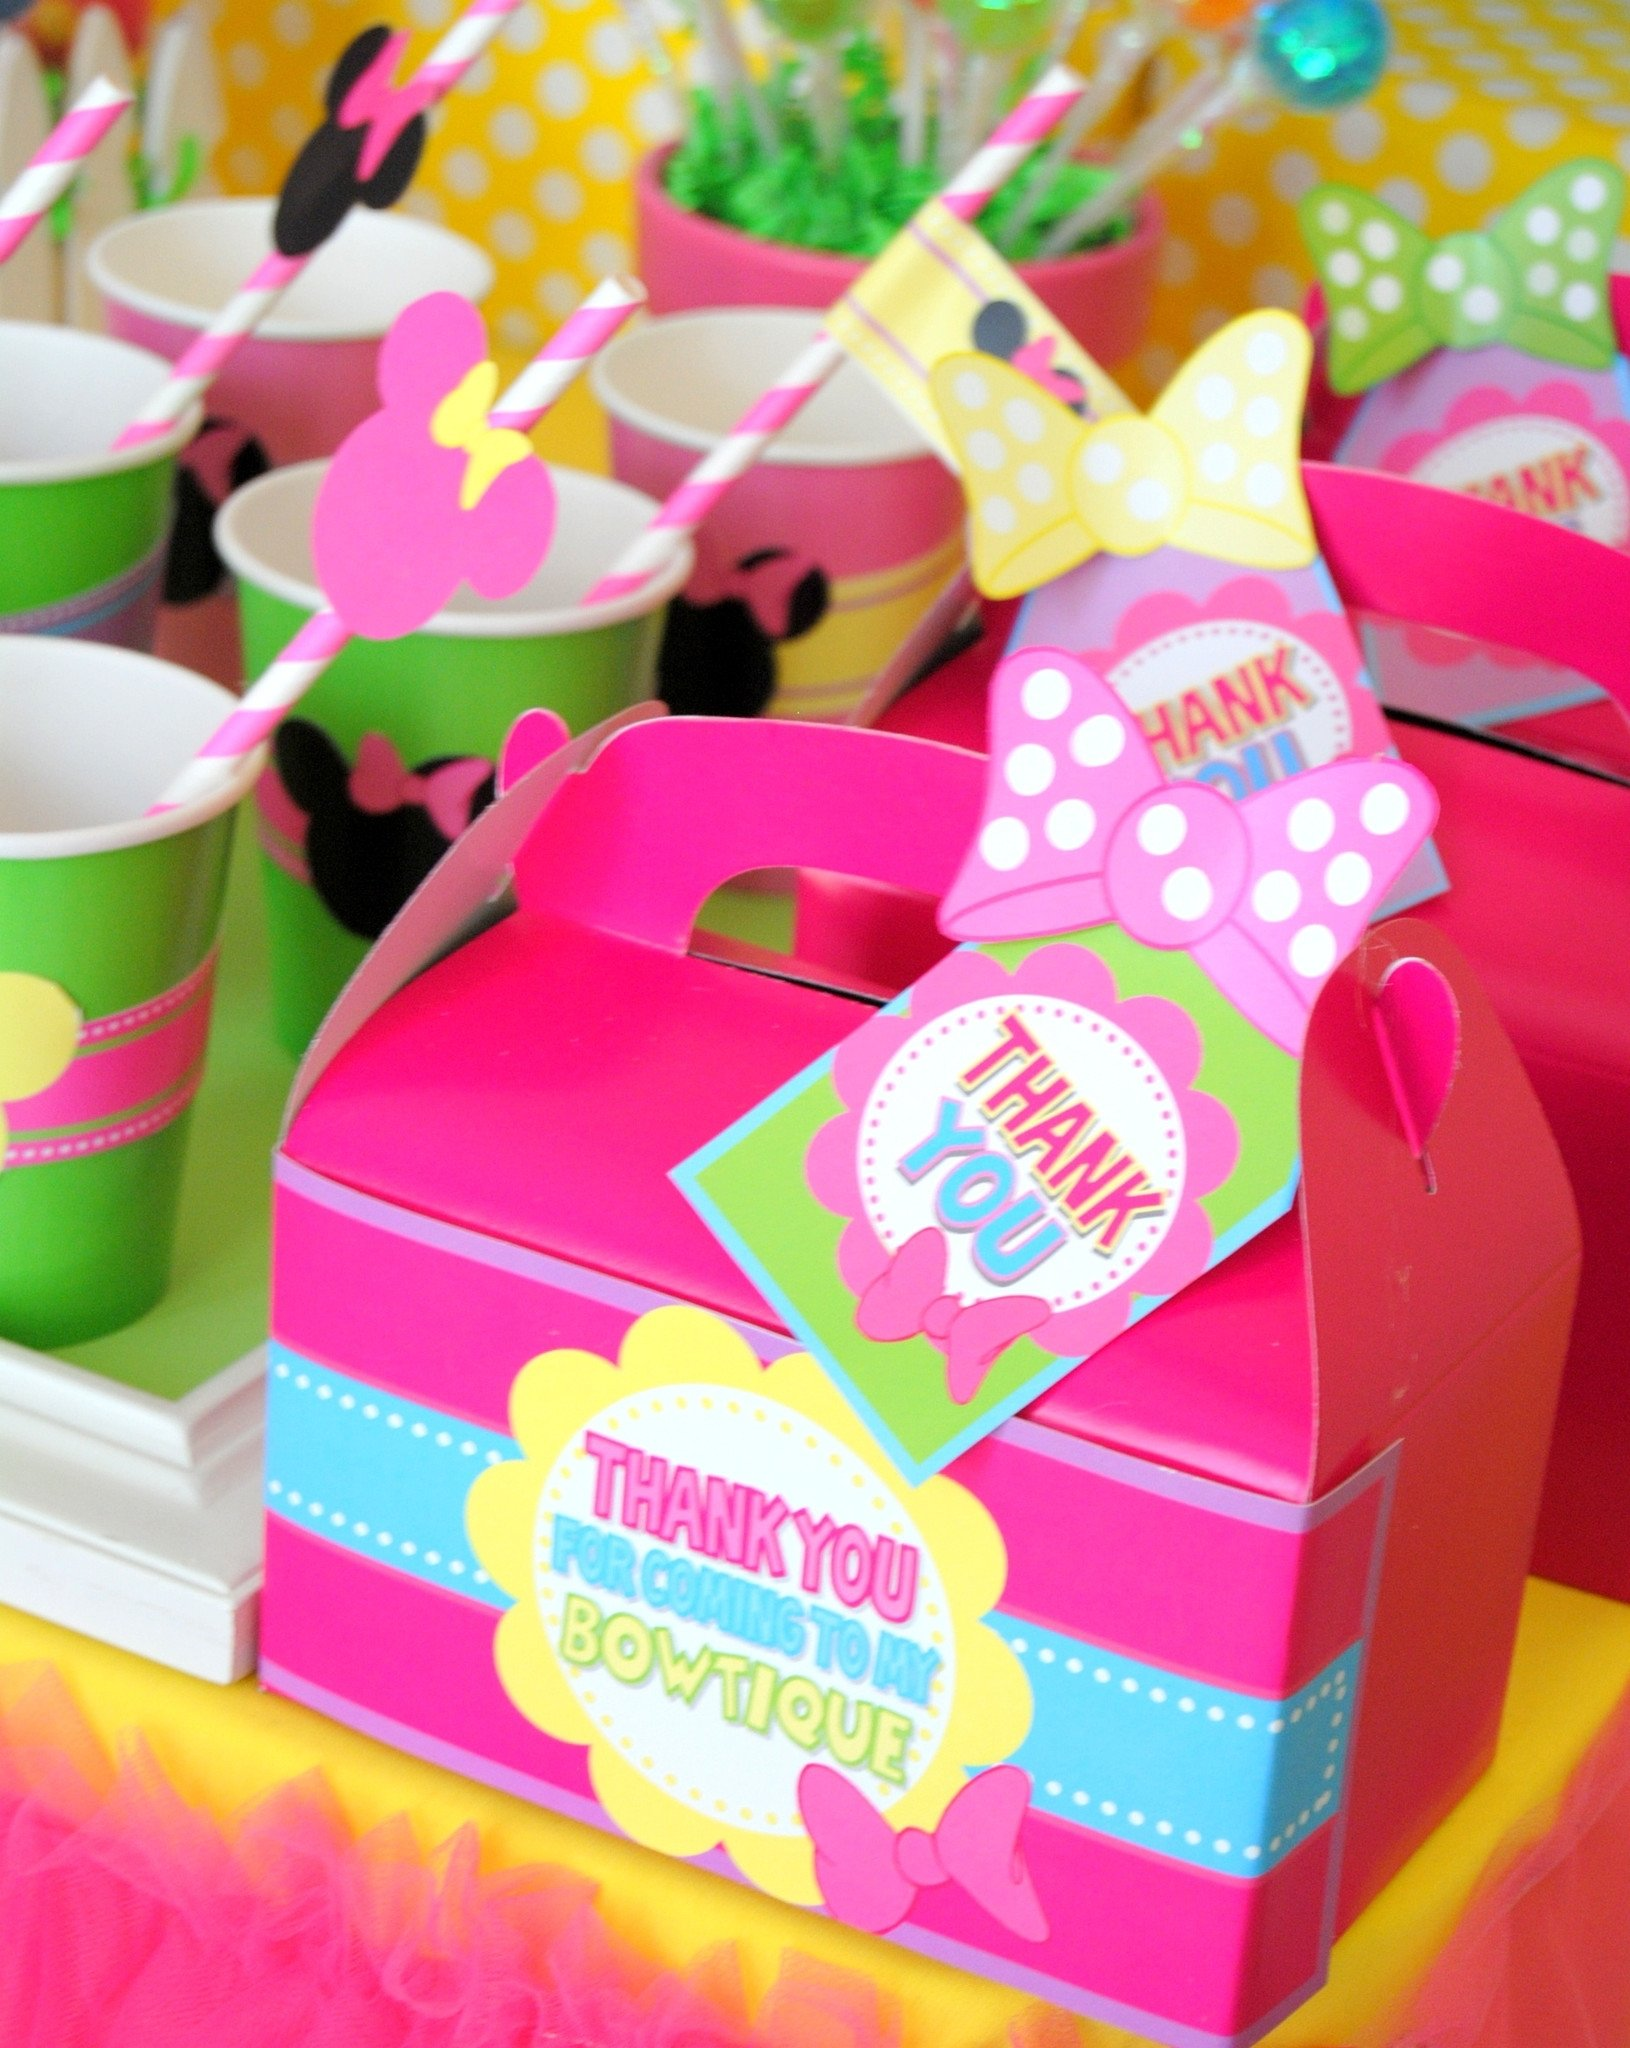 10 Wonderful Minnie Mouse Bowtique Party Ideas bowtique party pink mouse birthday party mouse thank you tags 2020